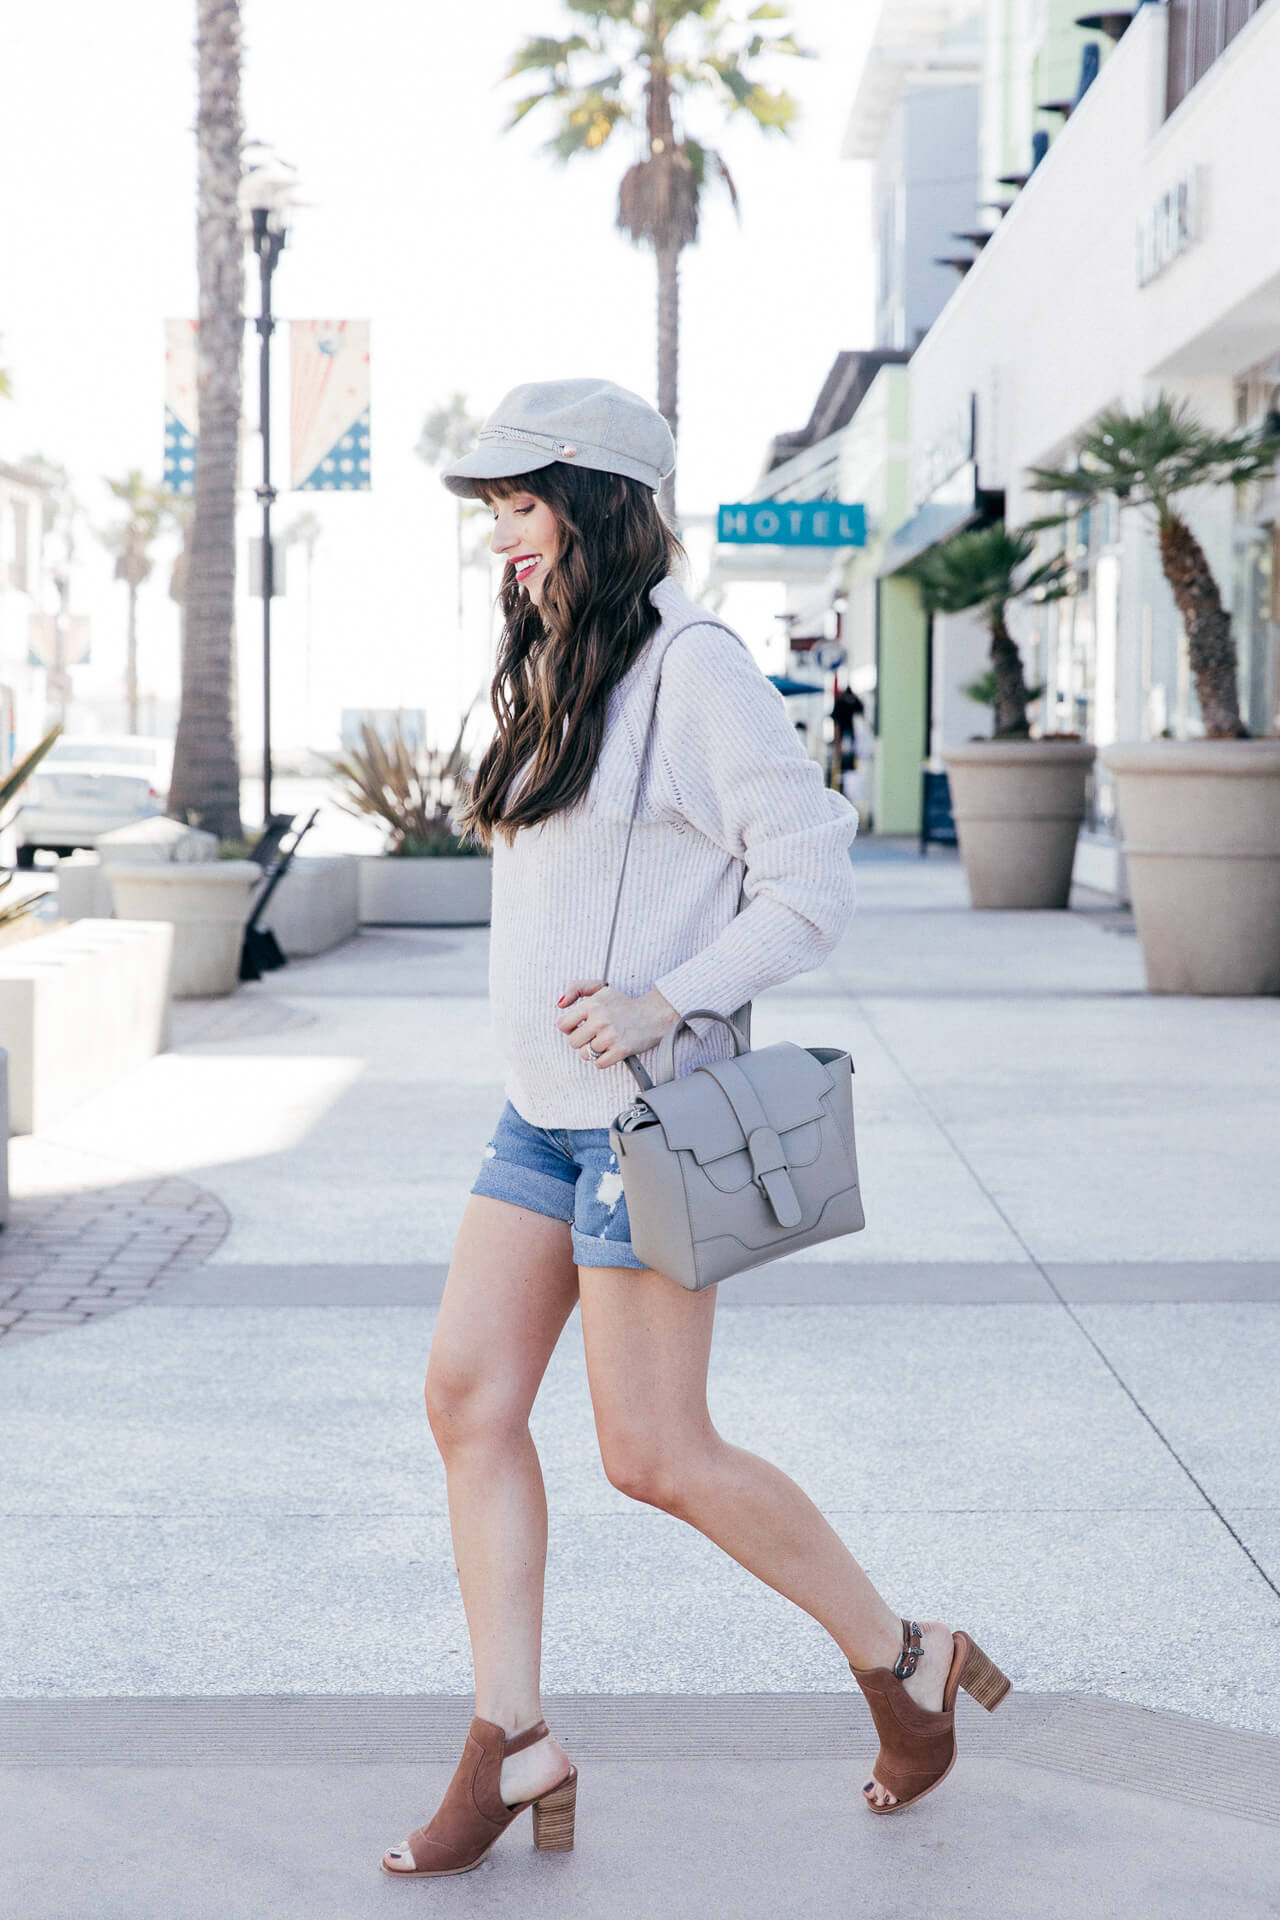 I love this outfit inspired by SoCal in fall! Shorts with a sweater are so cute!   M Loves M @marmar